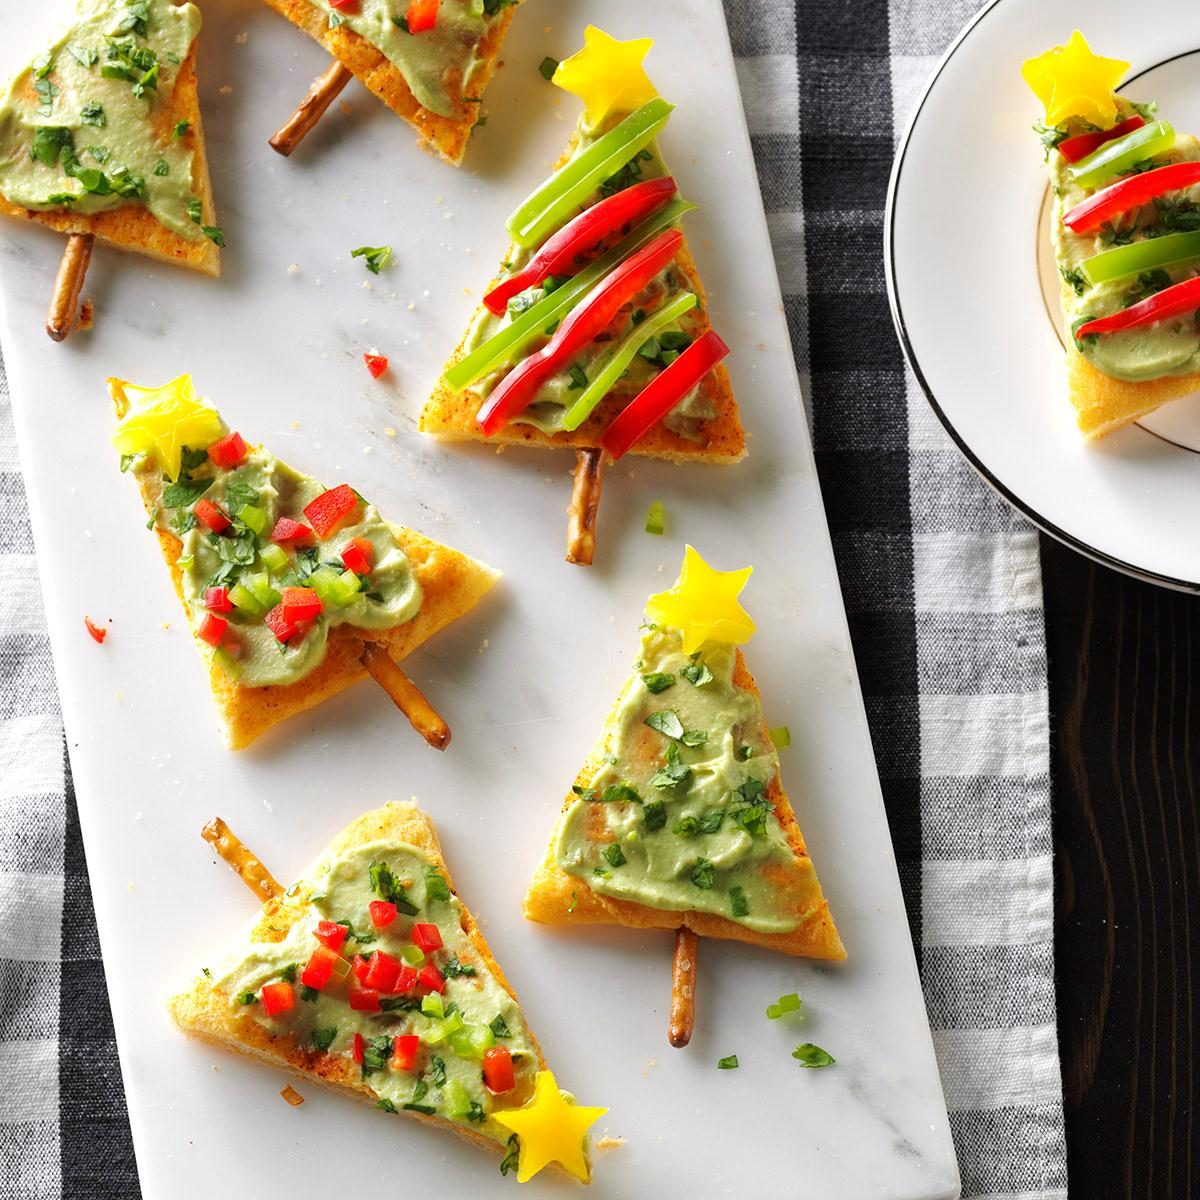 38 Cool Finger Foods For Your Next Party: Festive Guacamole Appetizers Recipe